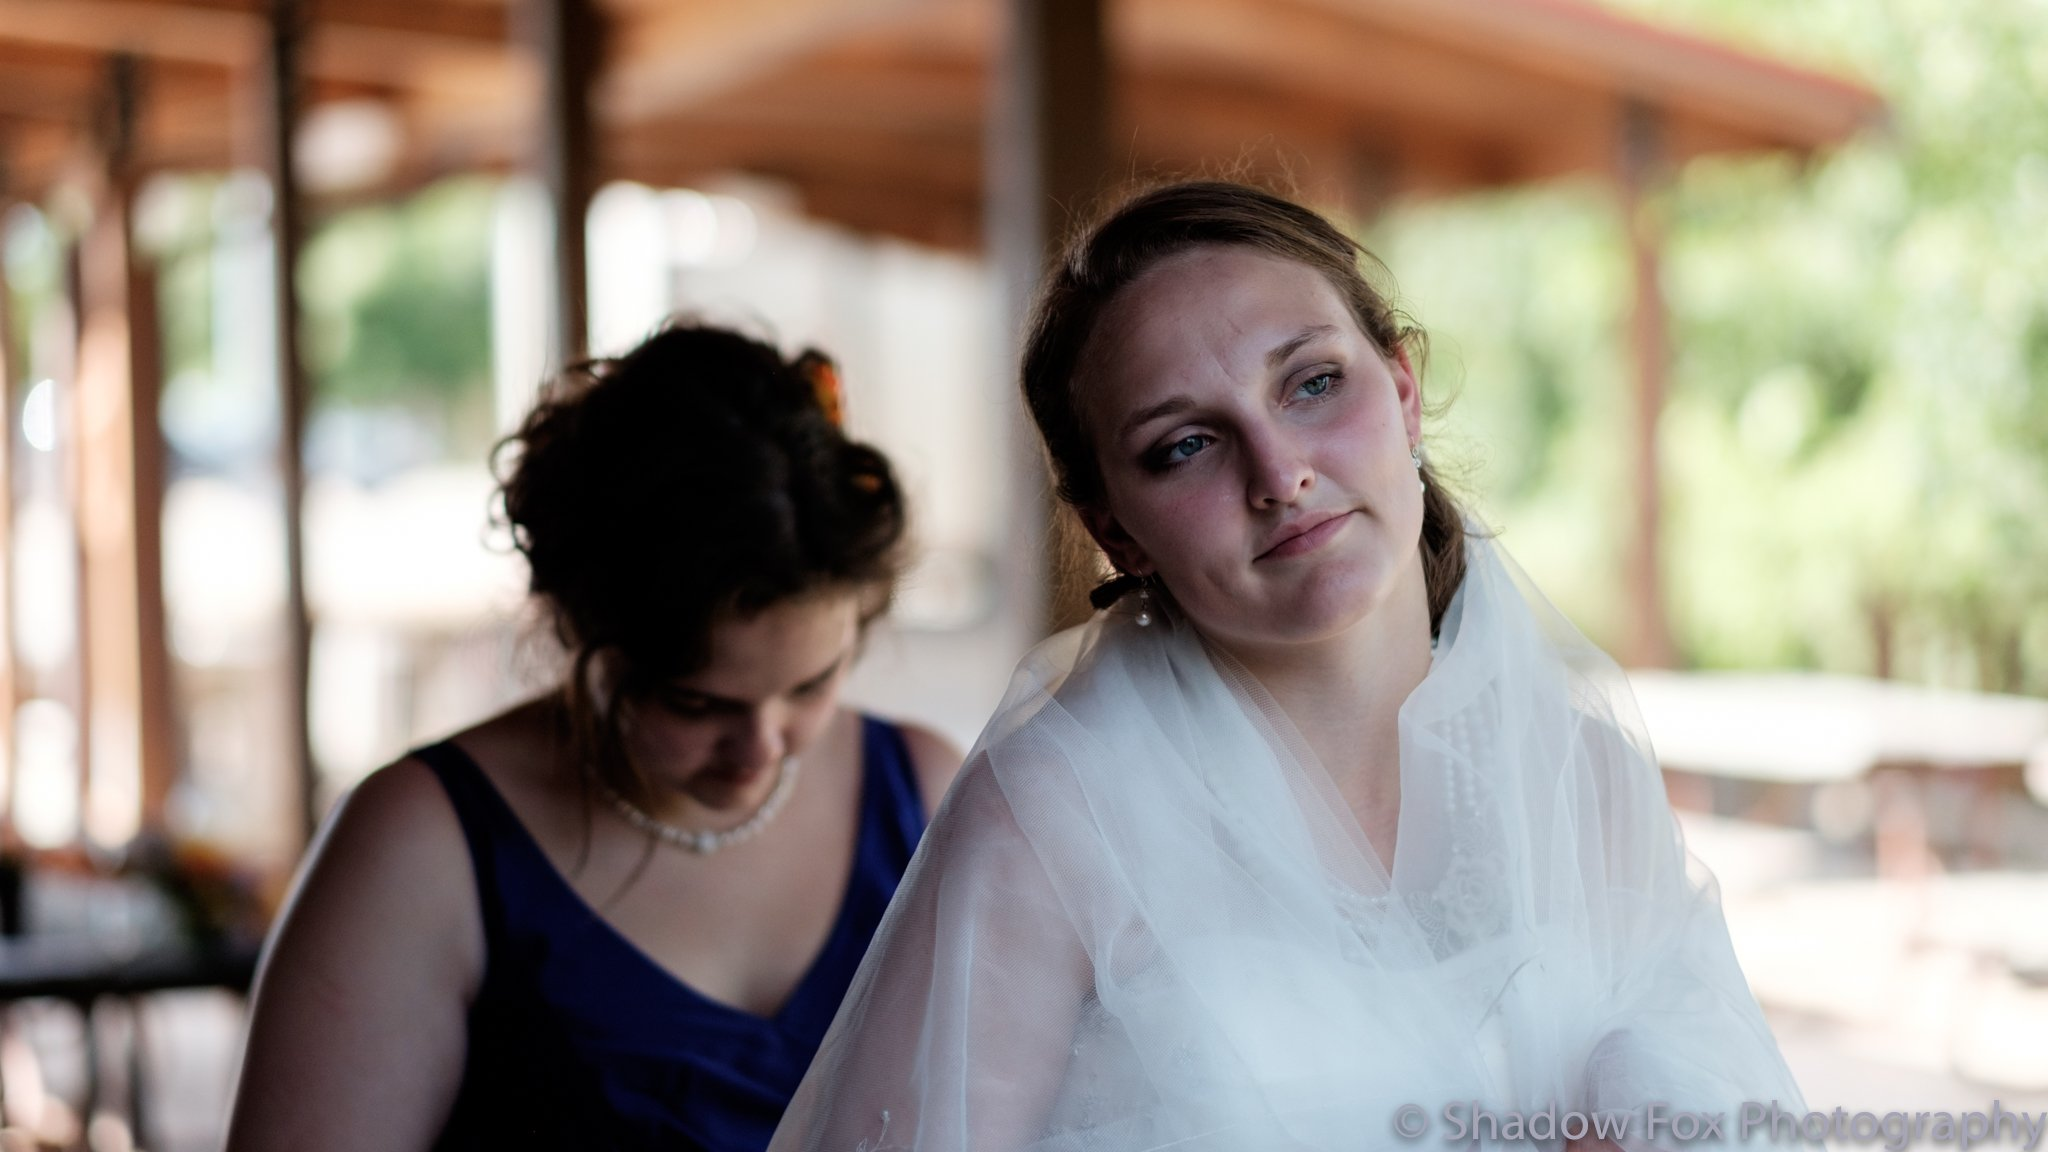 Photo of the bride getting ready before her wedding